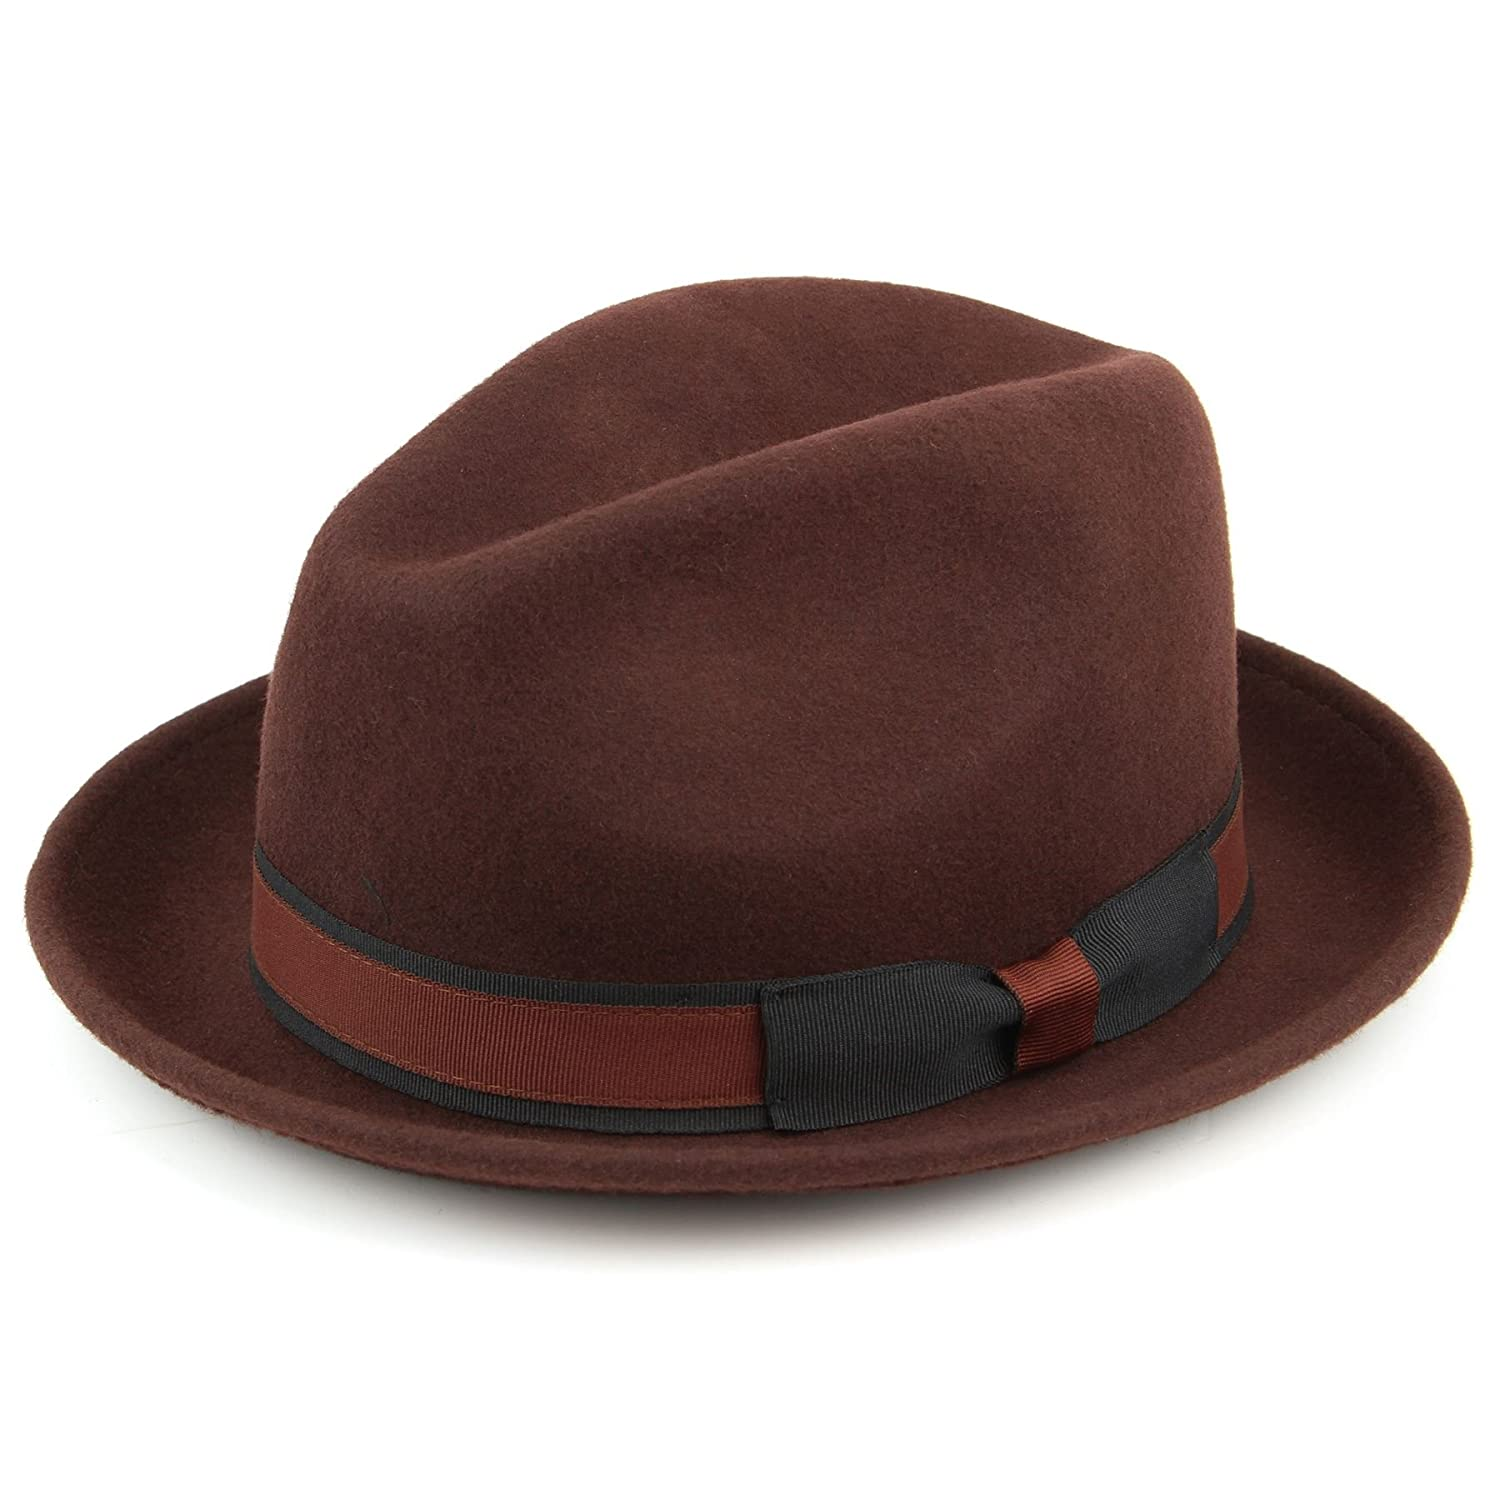 Hawkins 100% Wool Trilby hat with Contrast Band and Side Bow